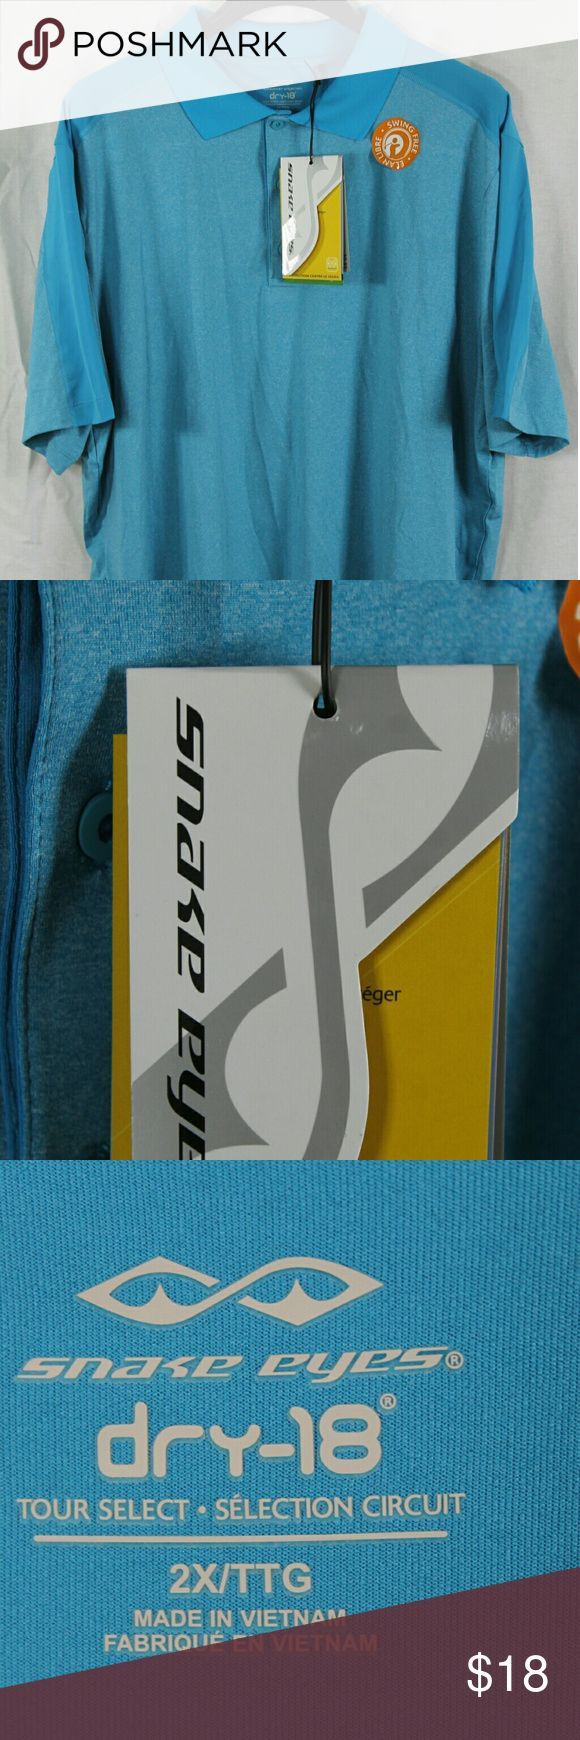 "MENS SNAKE EYES BLUE DRY-18 GOLF POLO SHIRT 2XL NE SIZE:     2XL   ARMPIT - TO - ARMPIT:     24""   LENGTH DOWN BACK:     32""   STYLE:     POLO   MATERIAL:     POLY/SPANDEX   CONDITION:        BRAND NEW WITH TAGS. SOURCED DIRECTLY FROM A NATIONAL UPSCALE U.S. RETAILER. QUALITY AND AUTHENTICITY GUARANTEED! SNAKE EYES Shirts Polos"